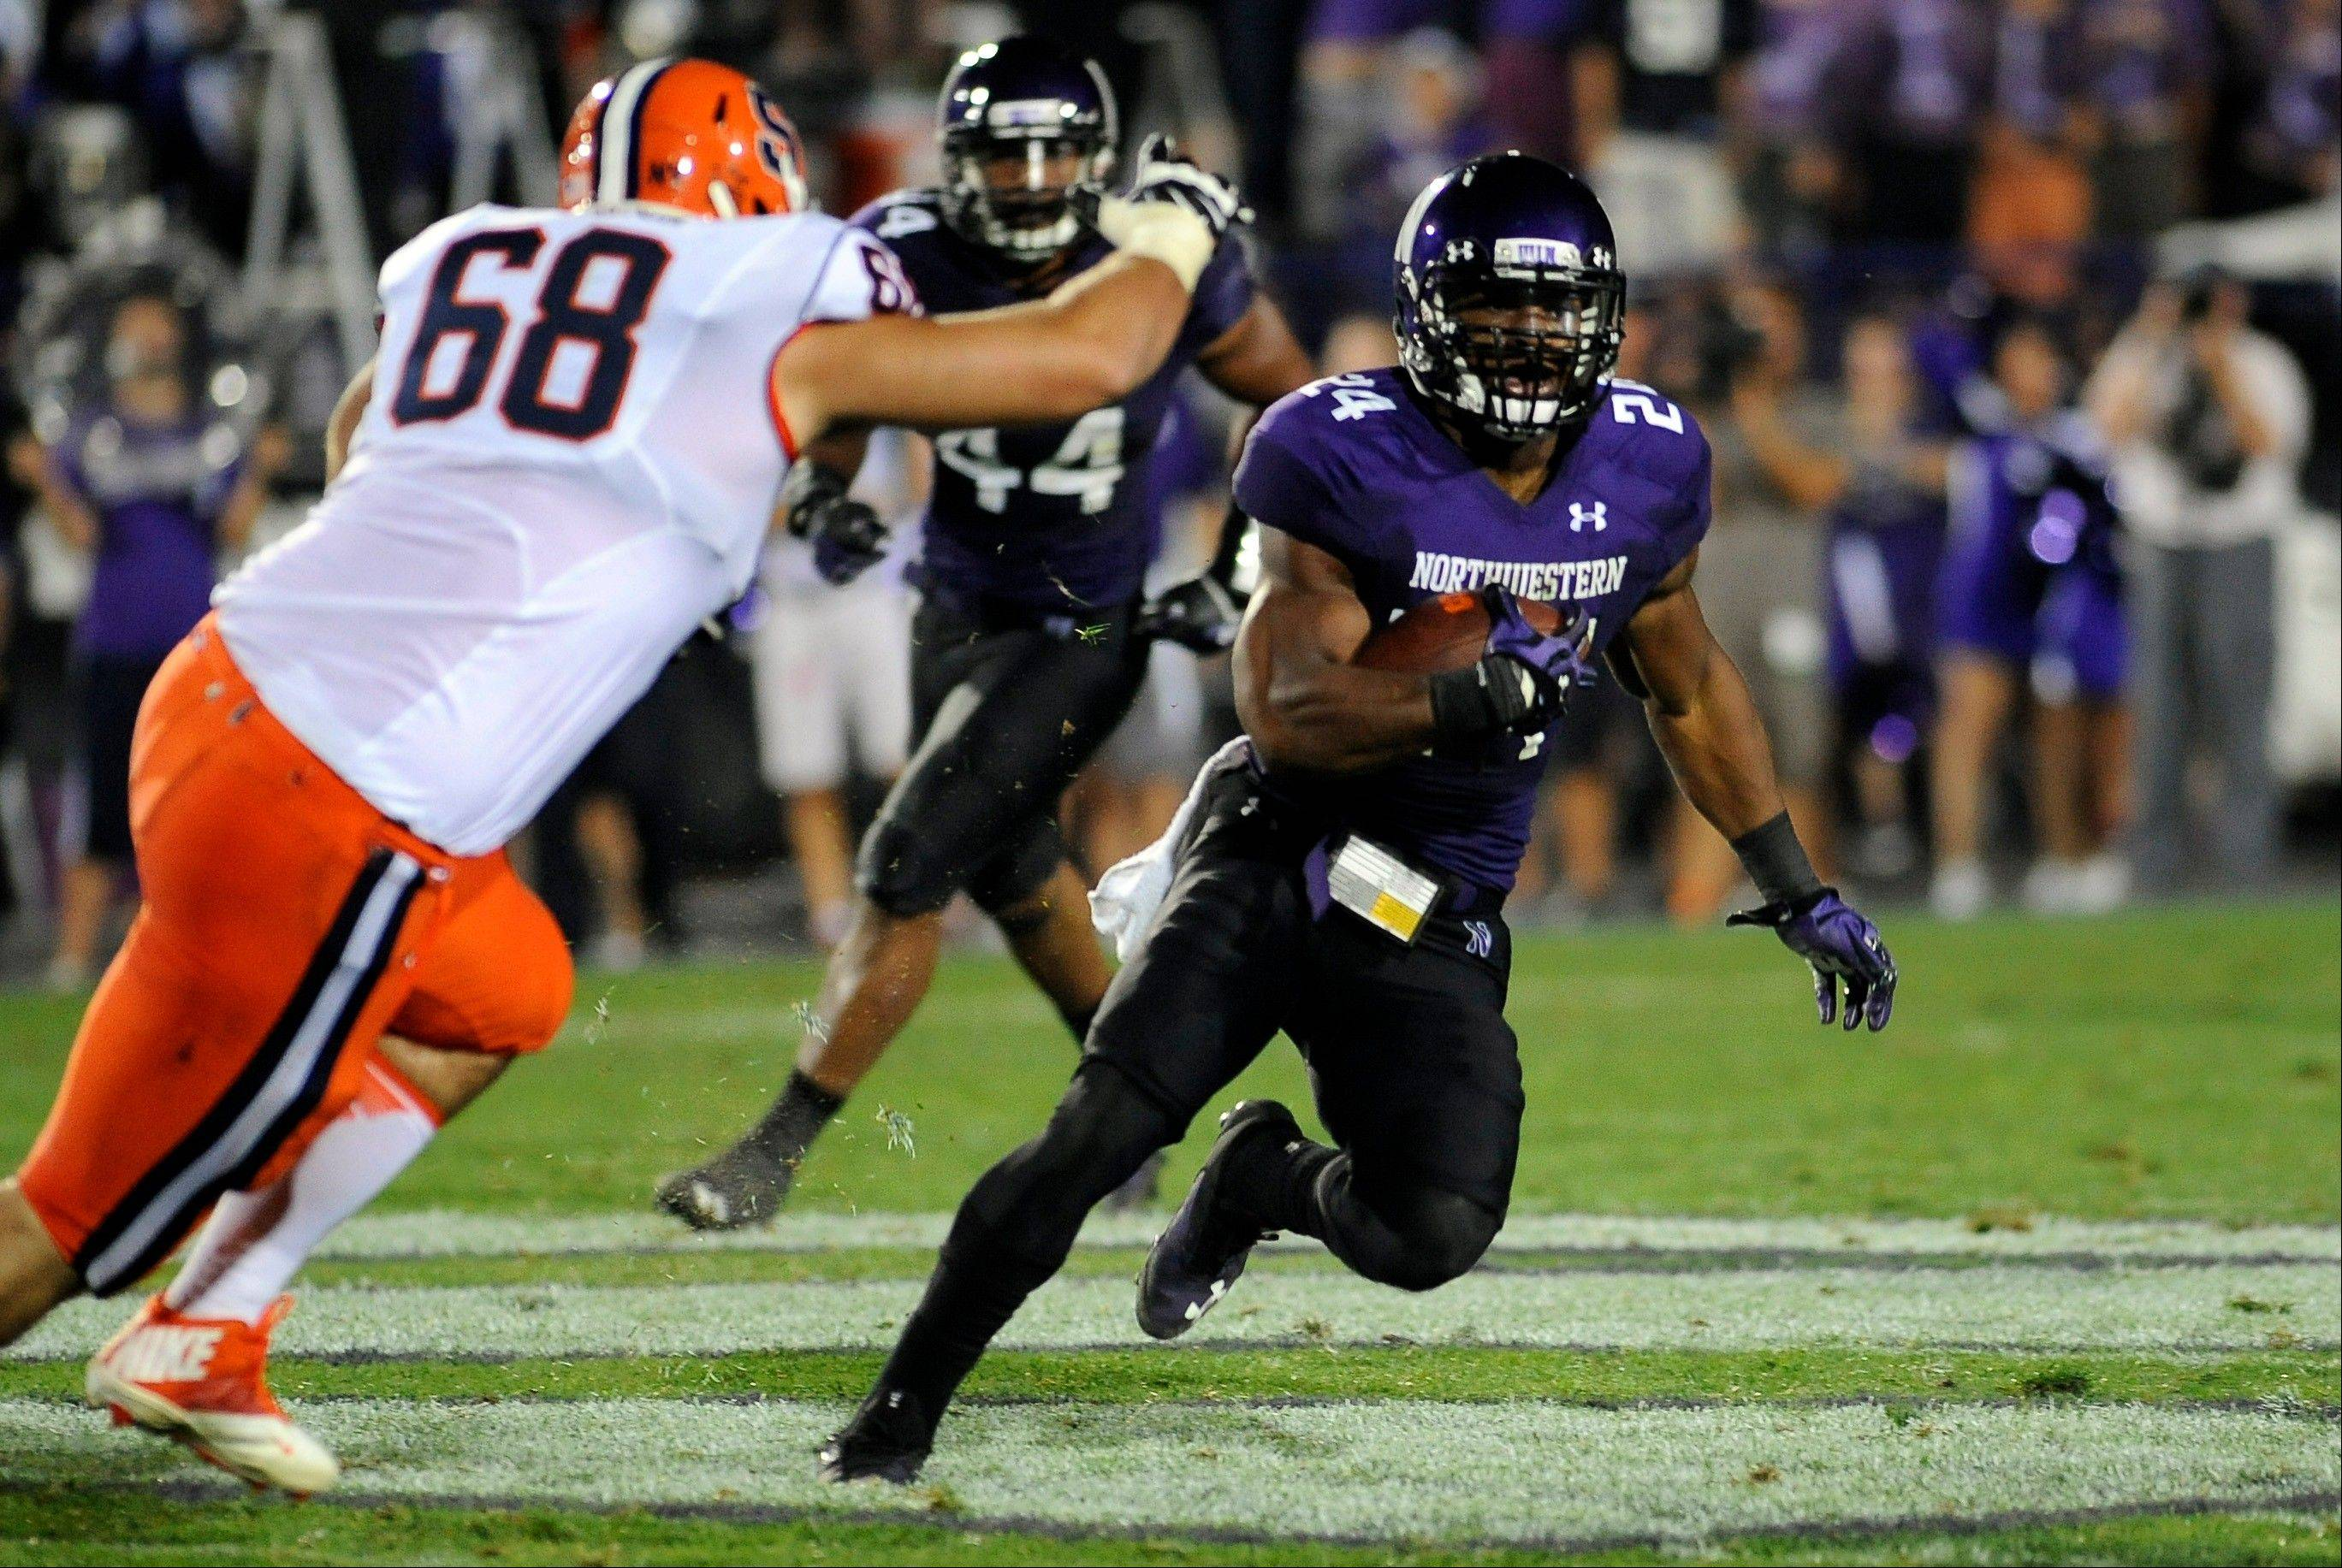 Northwestern's Ibraheim Campbell runs with an interception in the second half of an NCAA college football game against Syracuse in Evanston, Ill., Saturday, Sept. 7, 2013.